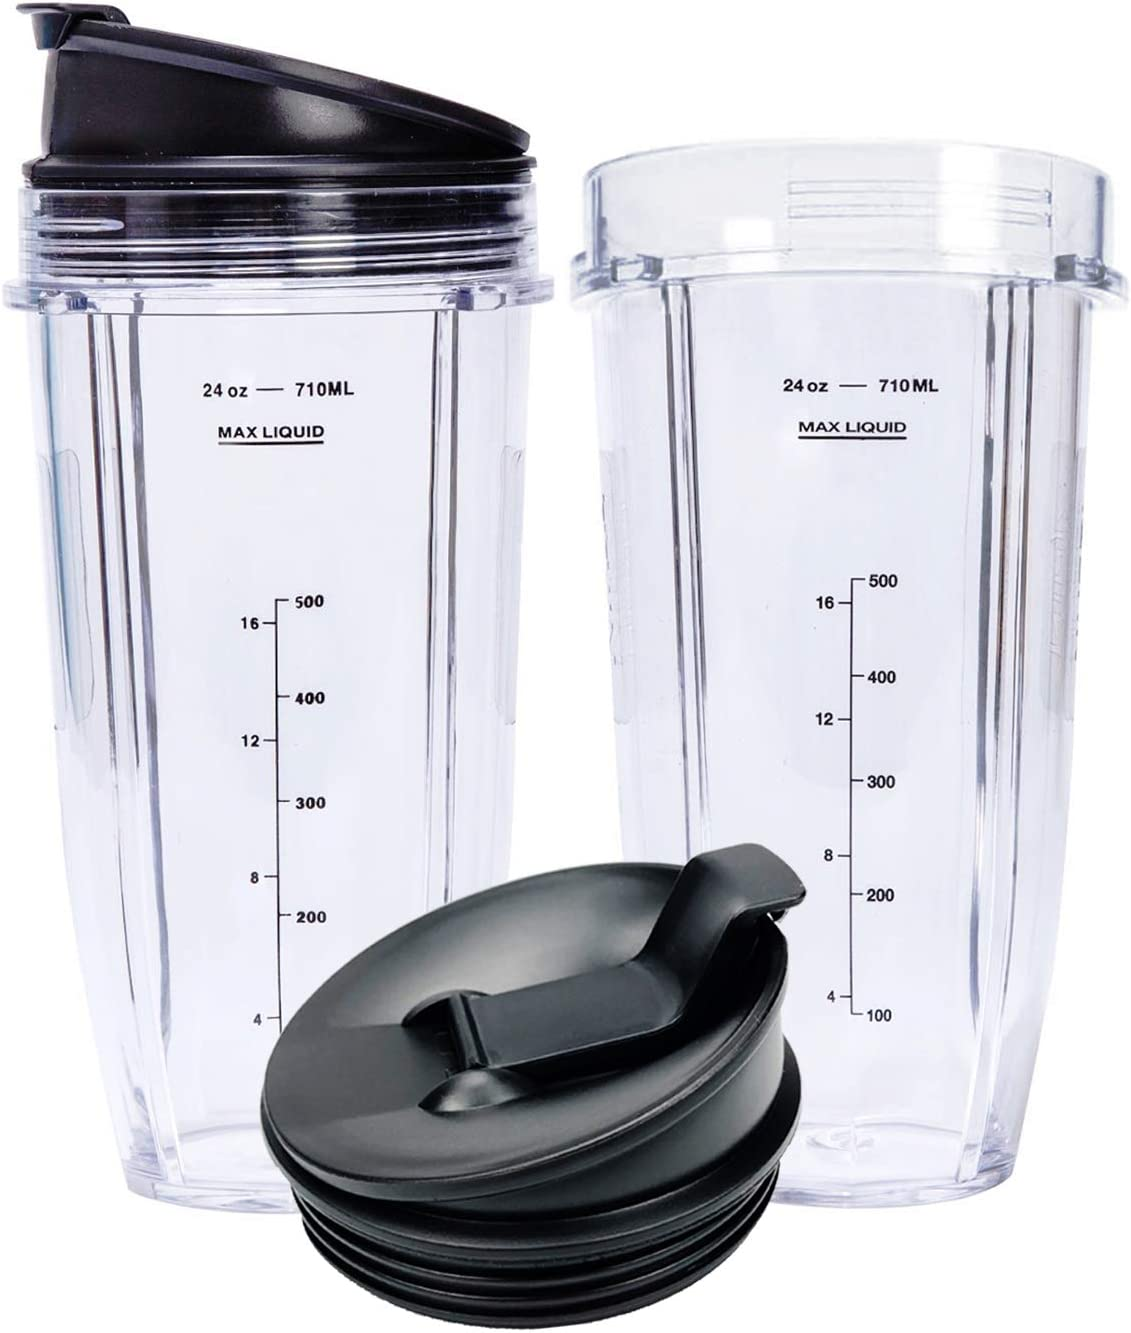 Replacement Blender Cups with Flip Top To Go Lid 24 oz Smoothie Cups 2 Pack for Nutri Ninja Auto IQ Series Blender Cross Blade BL2012, BL2013, BL480, BL487, BL487A, BL488W NN100, NN100A, NN101, NN102